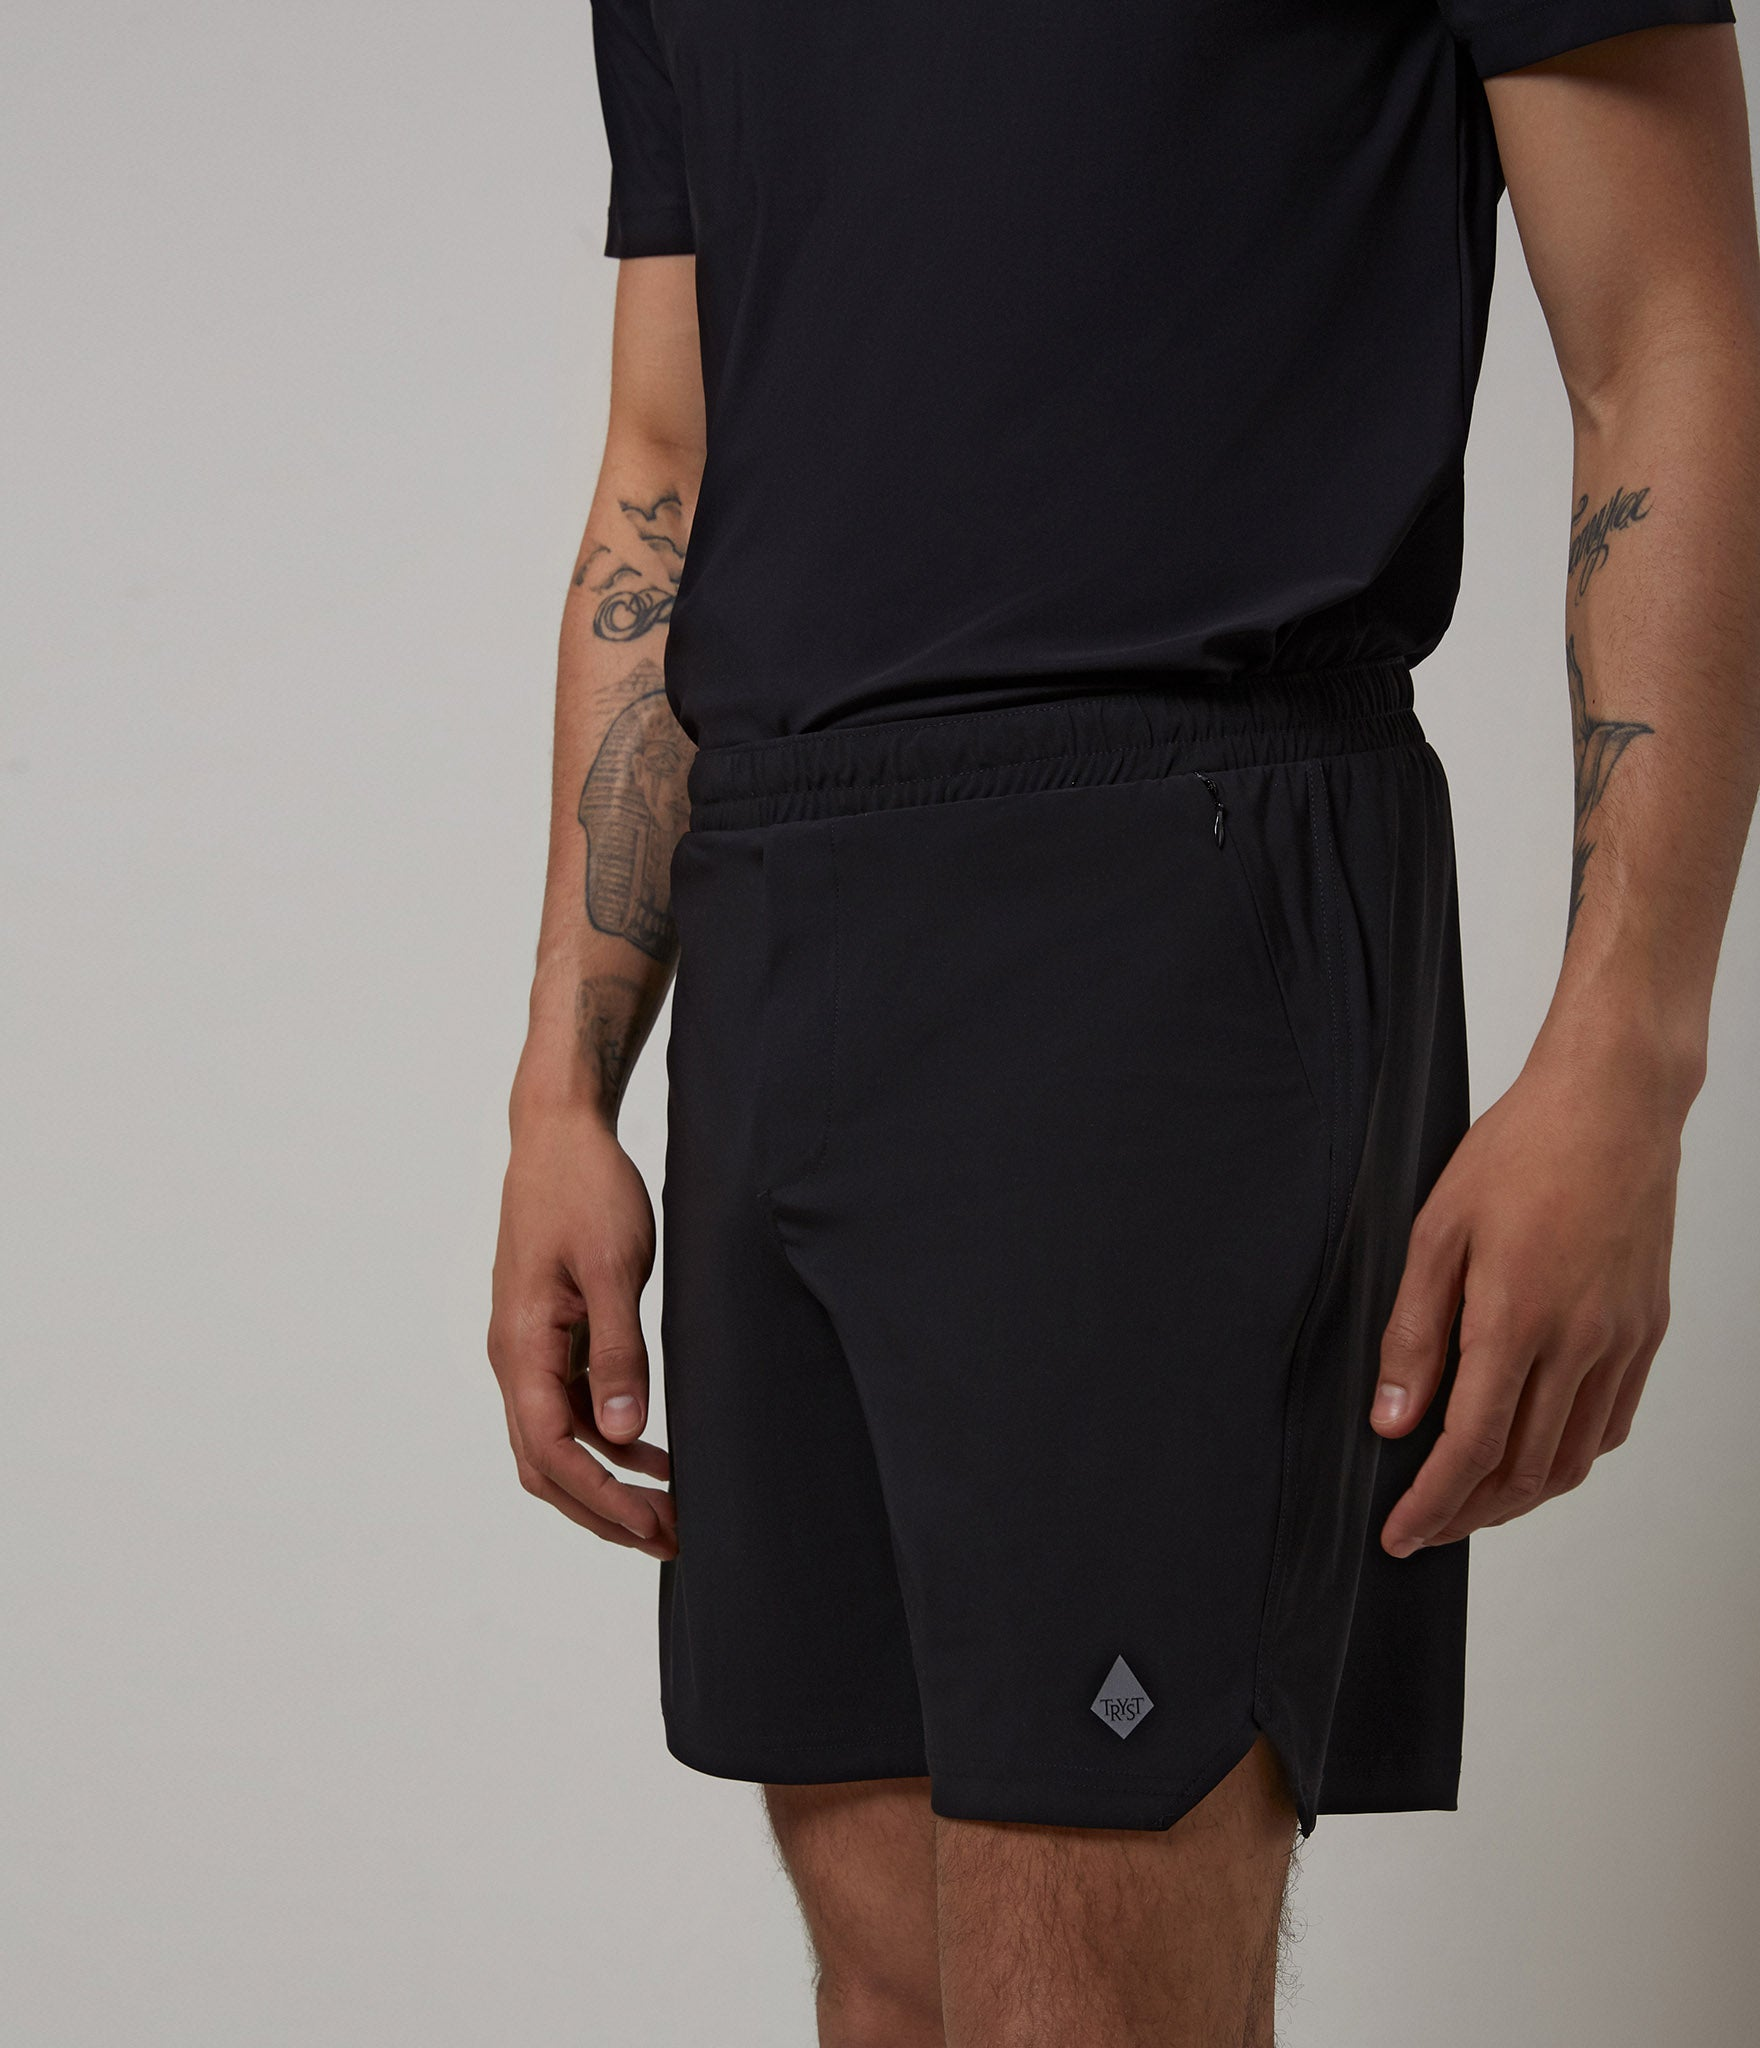 Paris shorts</br>Black